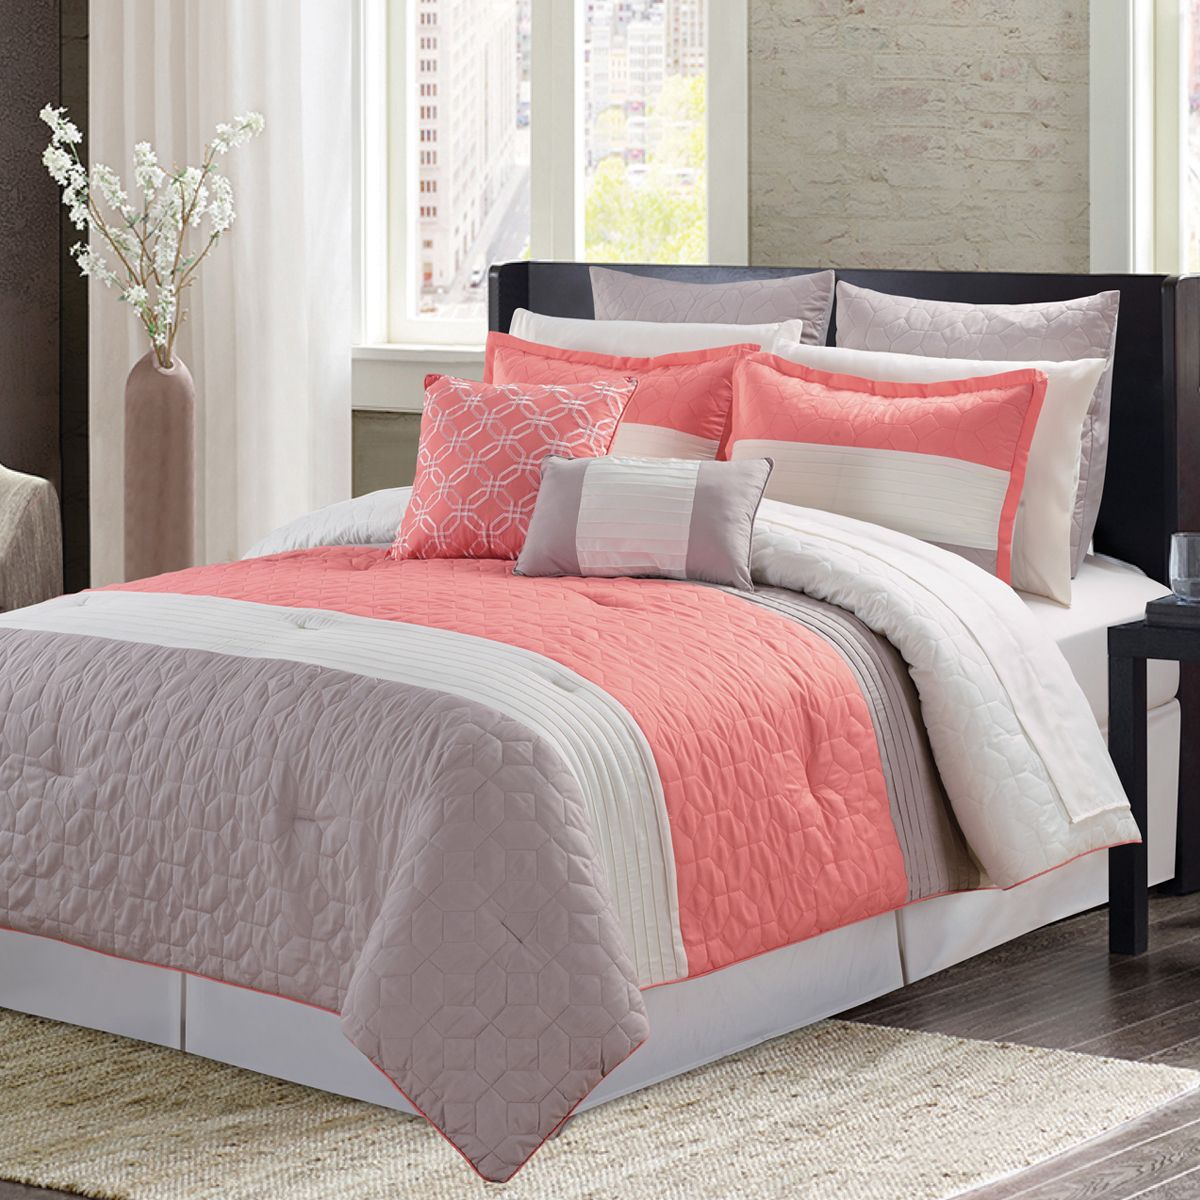 stunning coral beach bedroom | Online Shopping - Bedding, Furniture, Electronics, Jewelry ...